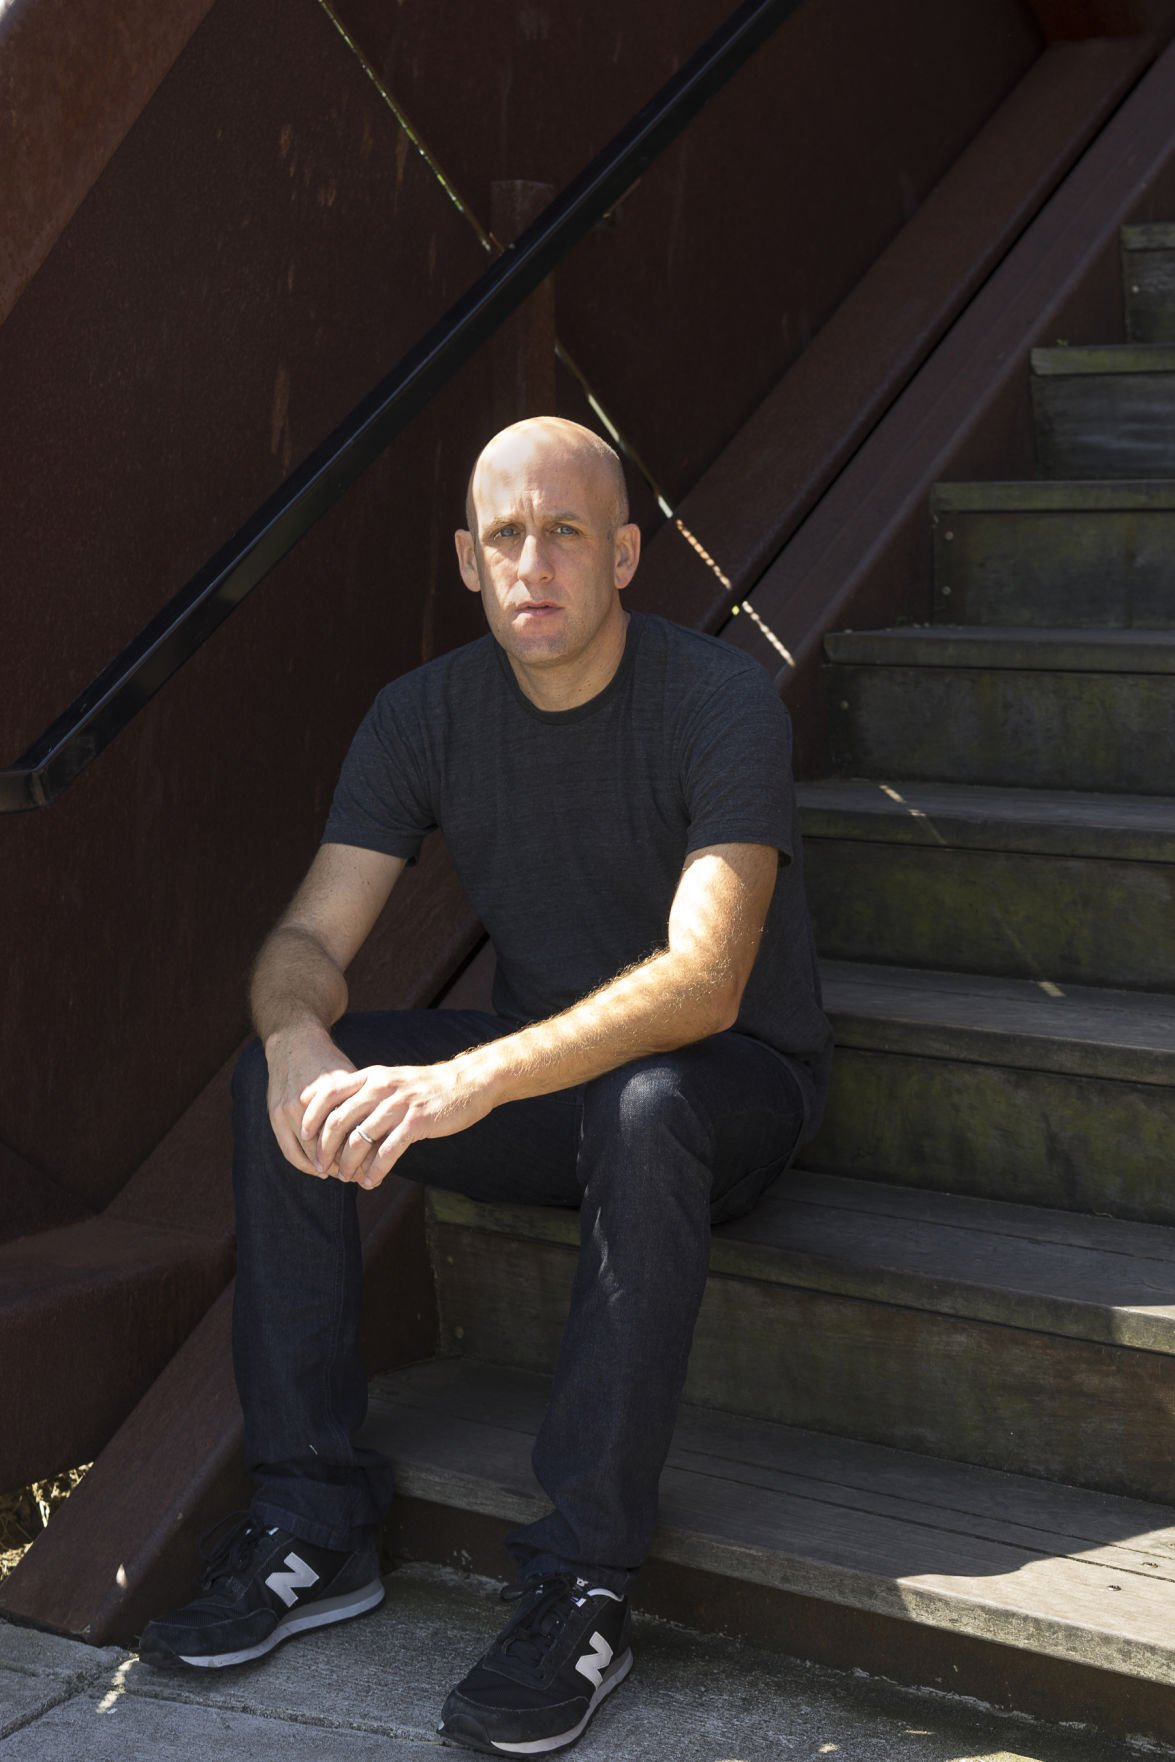 Author photo Brown by Tammy Mercure.jpg